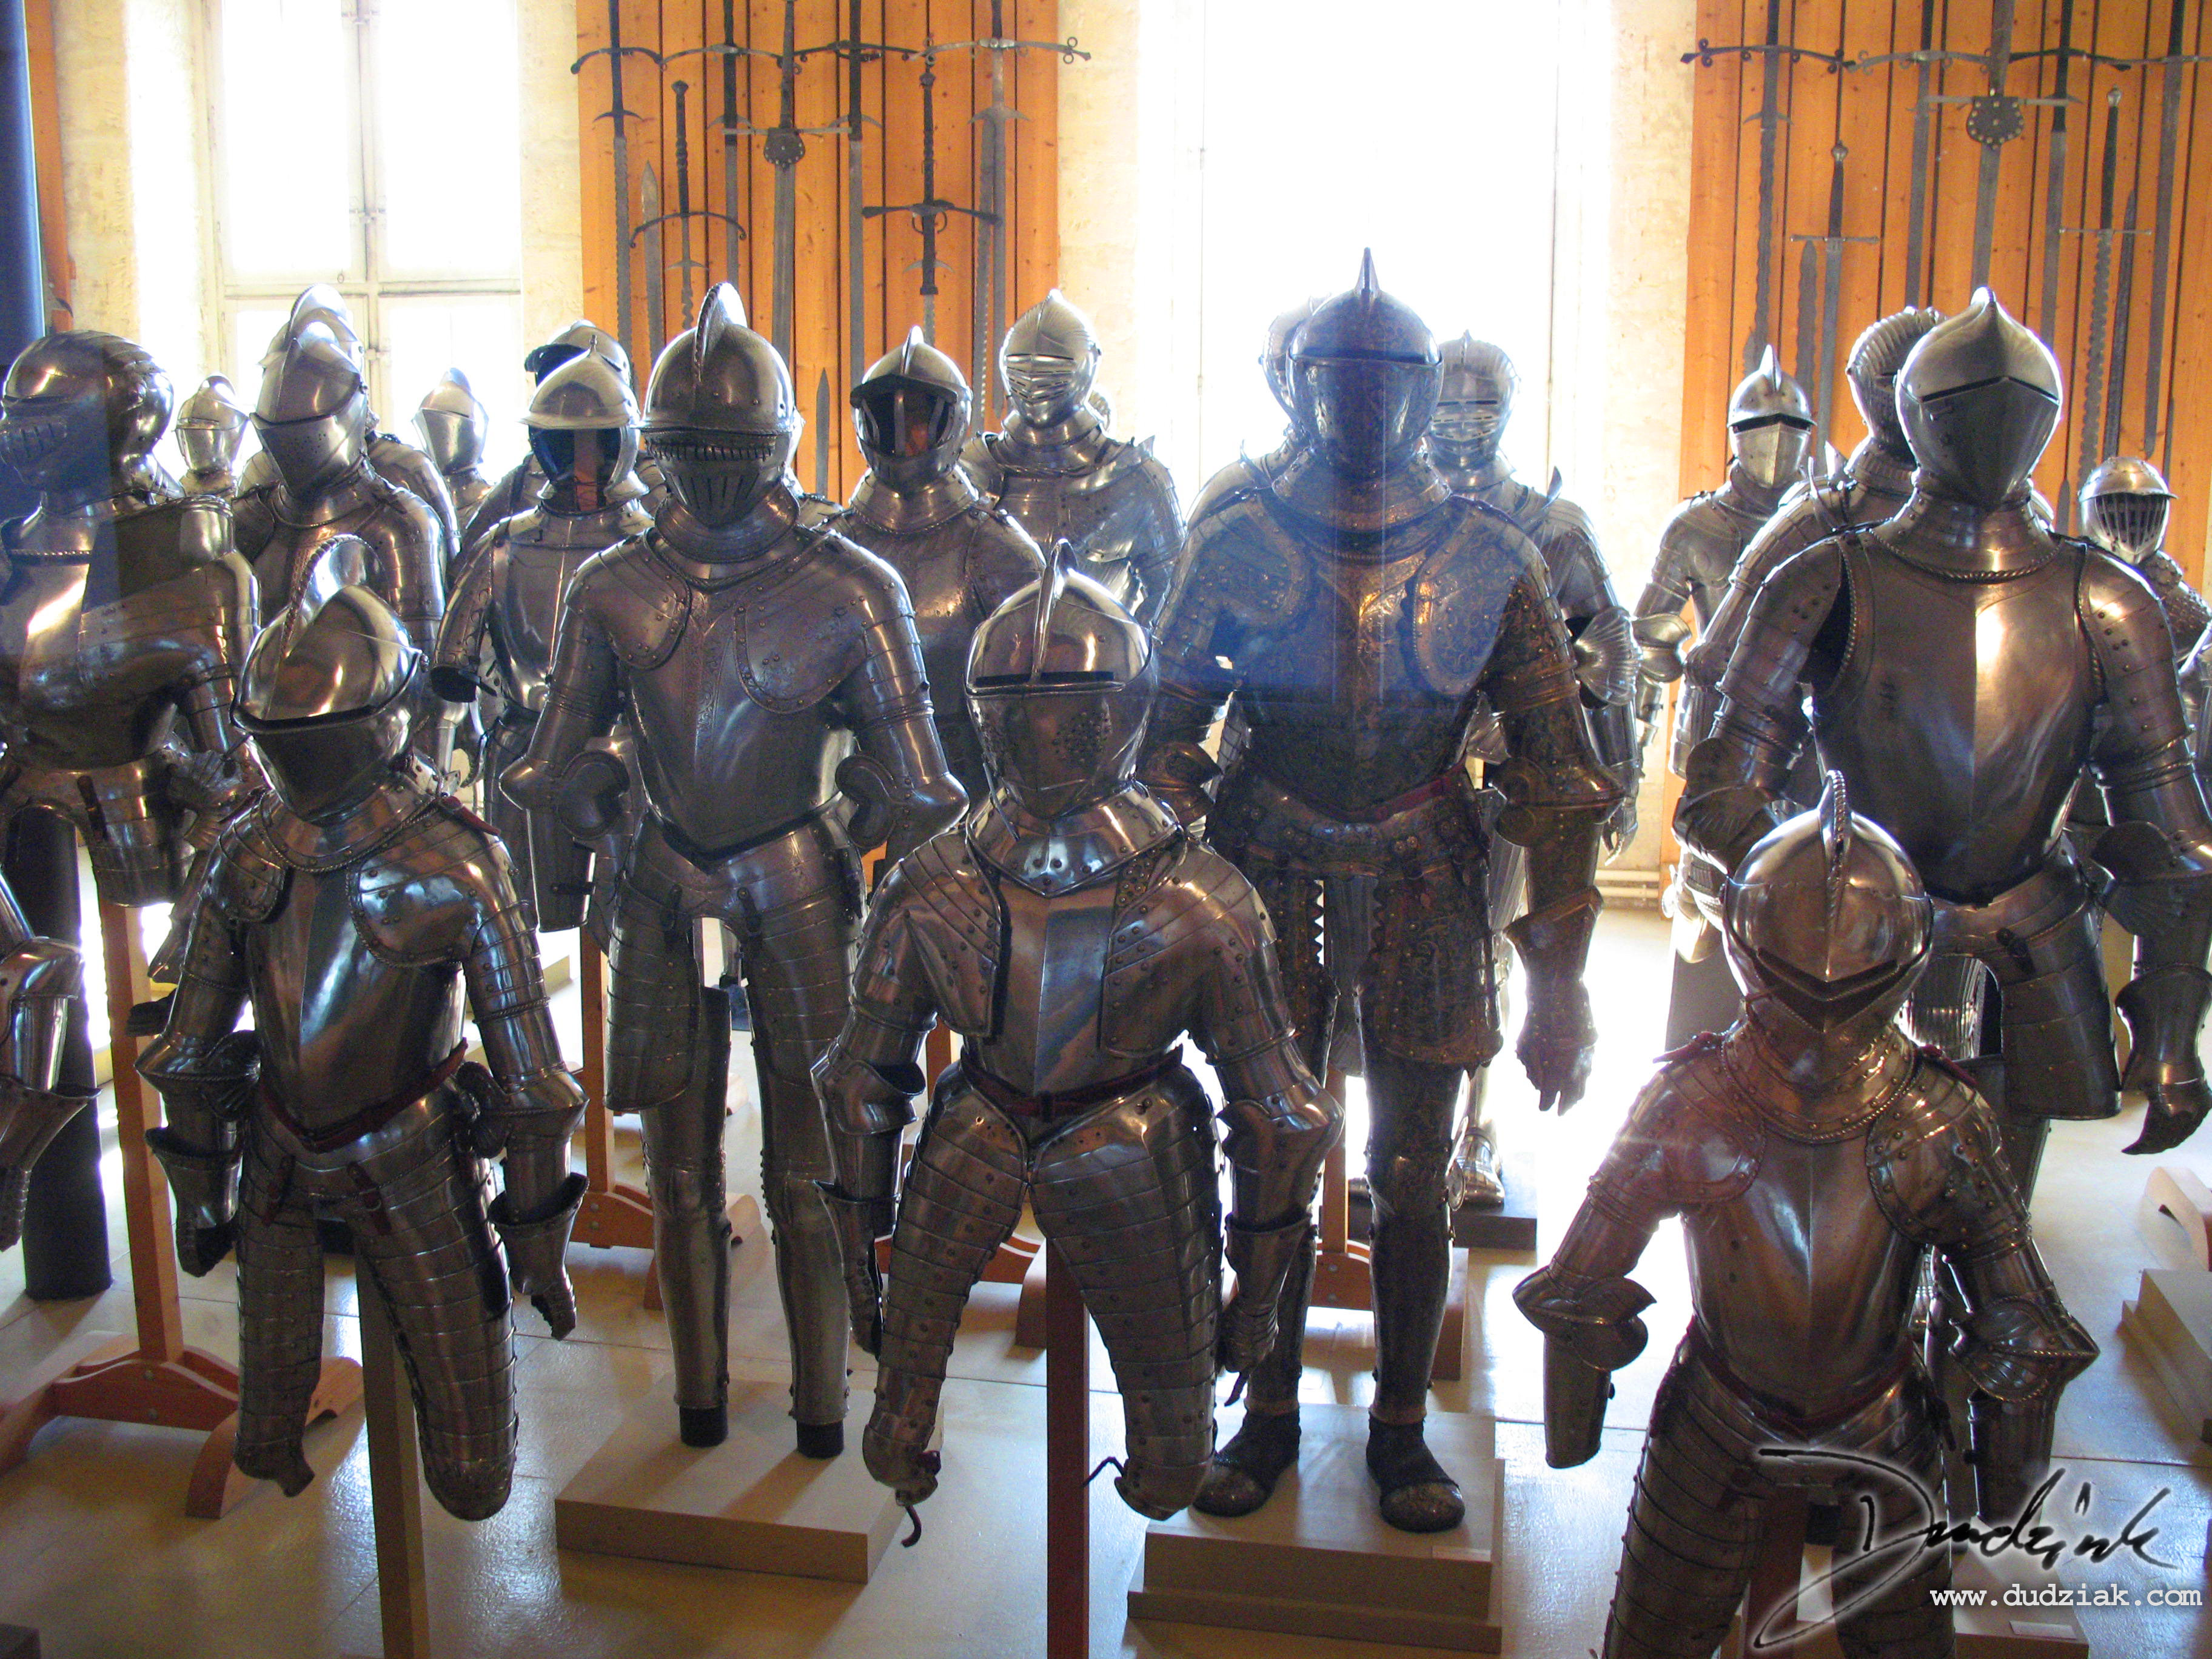 french knights,  Military Museum,  armor,  Les Invalides,  Paris France,  french armor